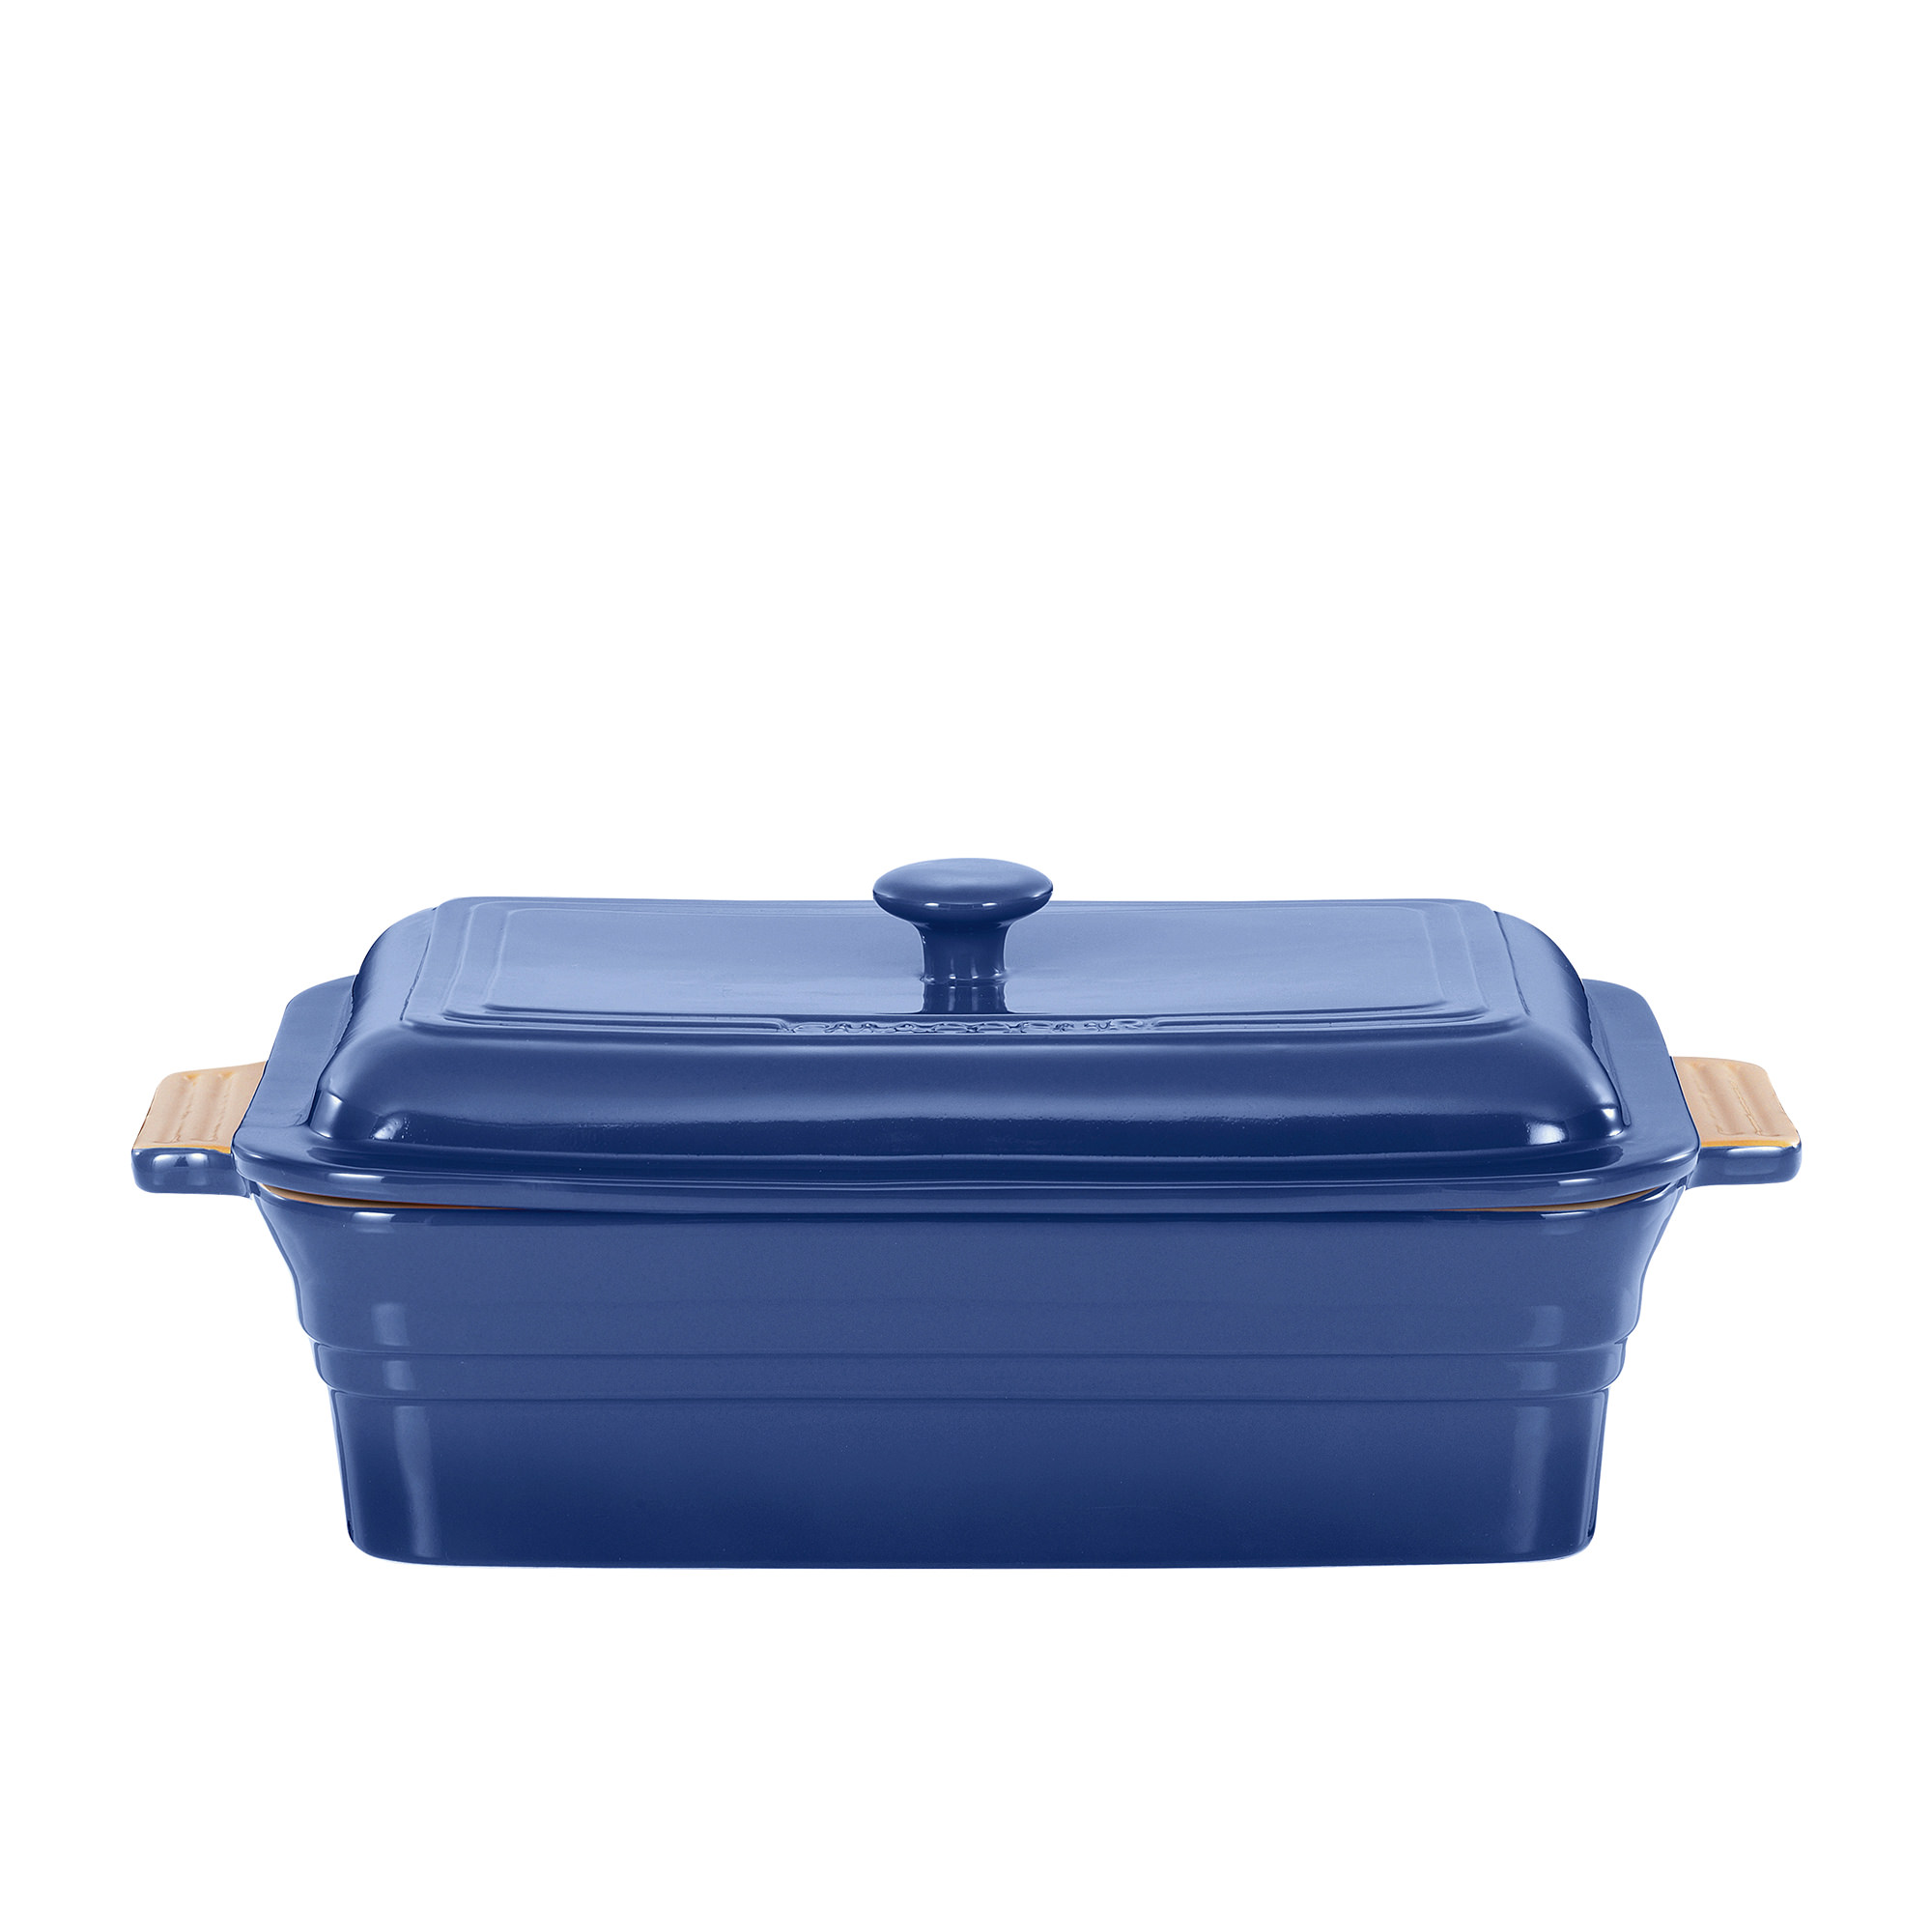 Chasseur La Cuisson Rectangular Dish 40cm with Lid Sky Blue